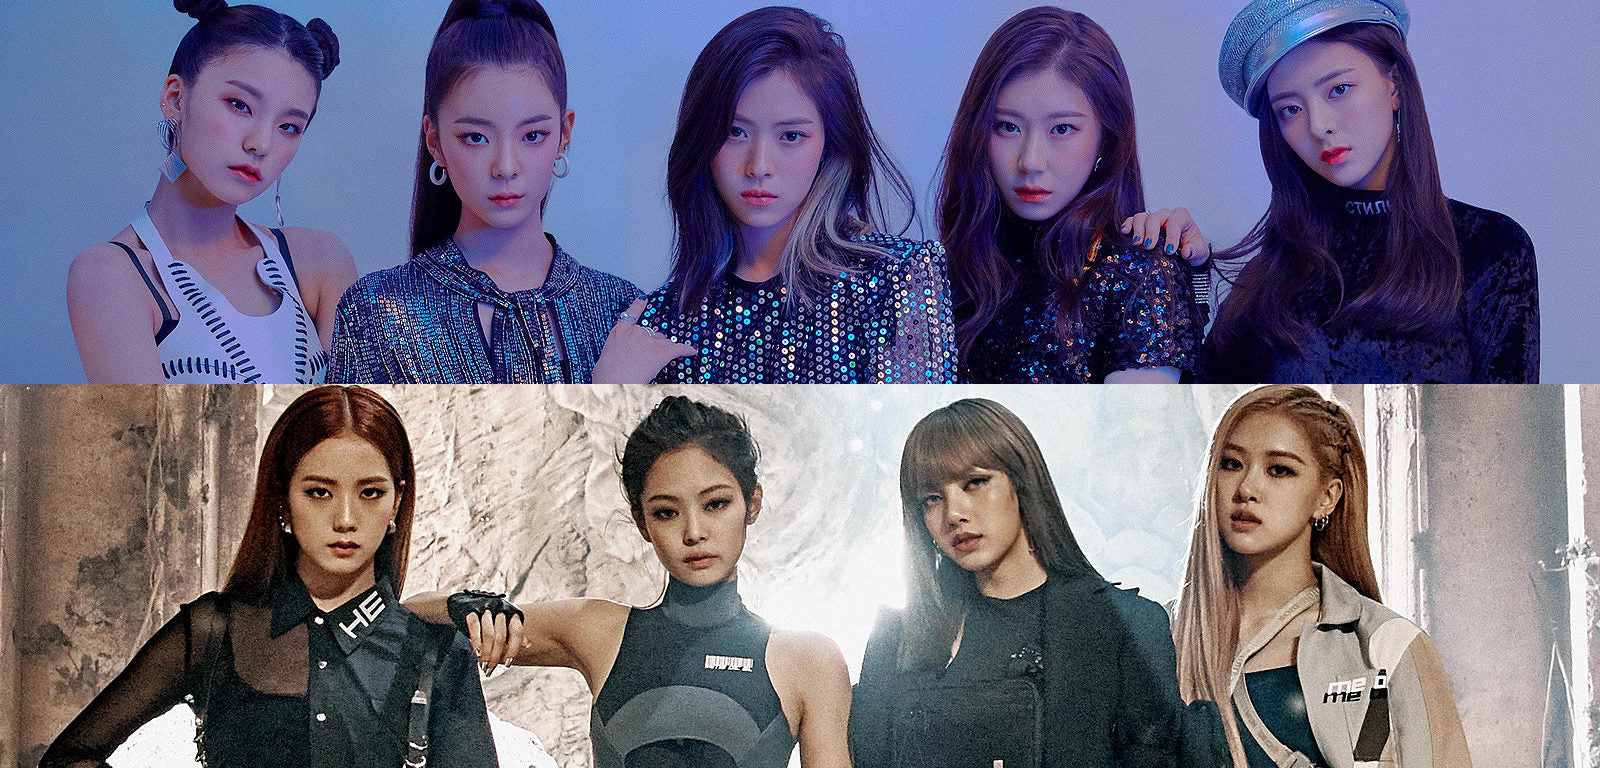 The most downloaded Kpop female band songs in 2019 - Kpopshop